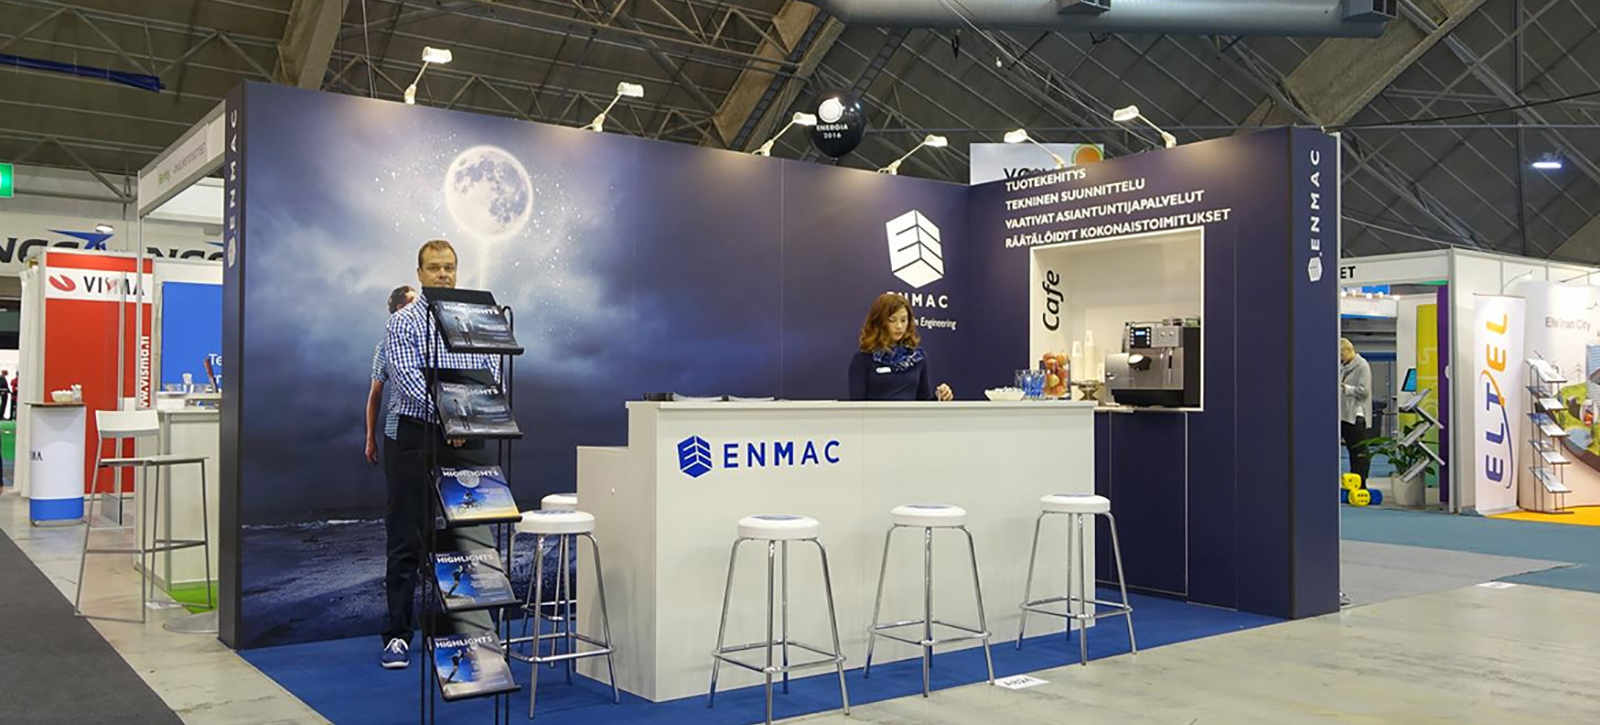 Messua exhibition stand - Enmac, Energia 2016